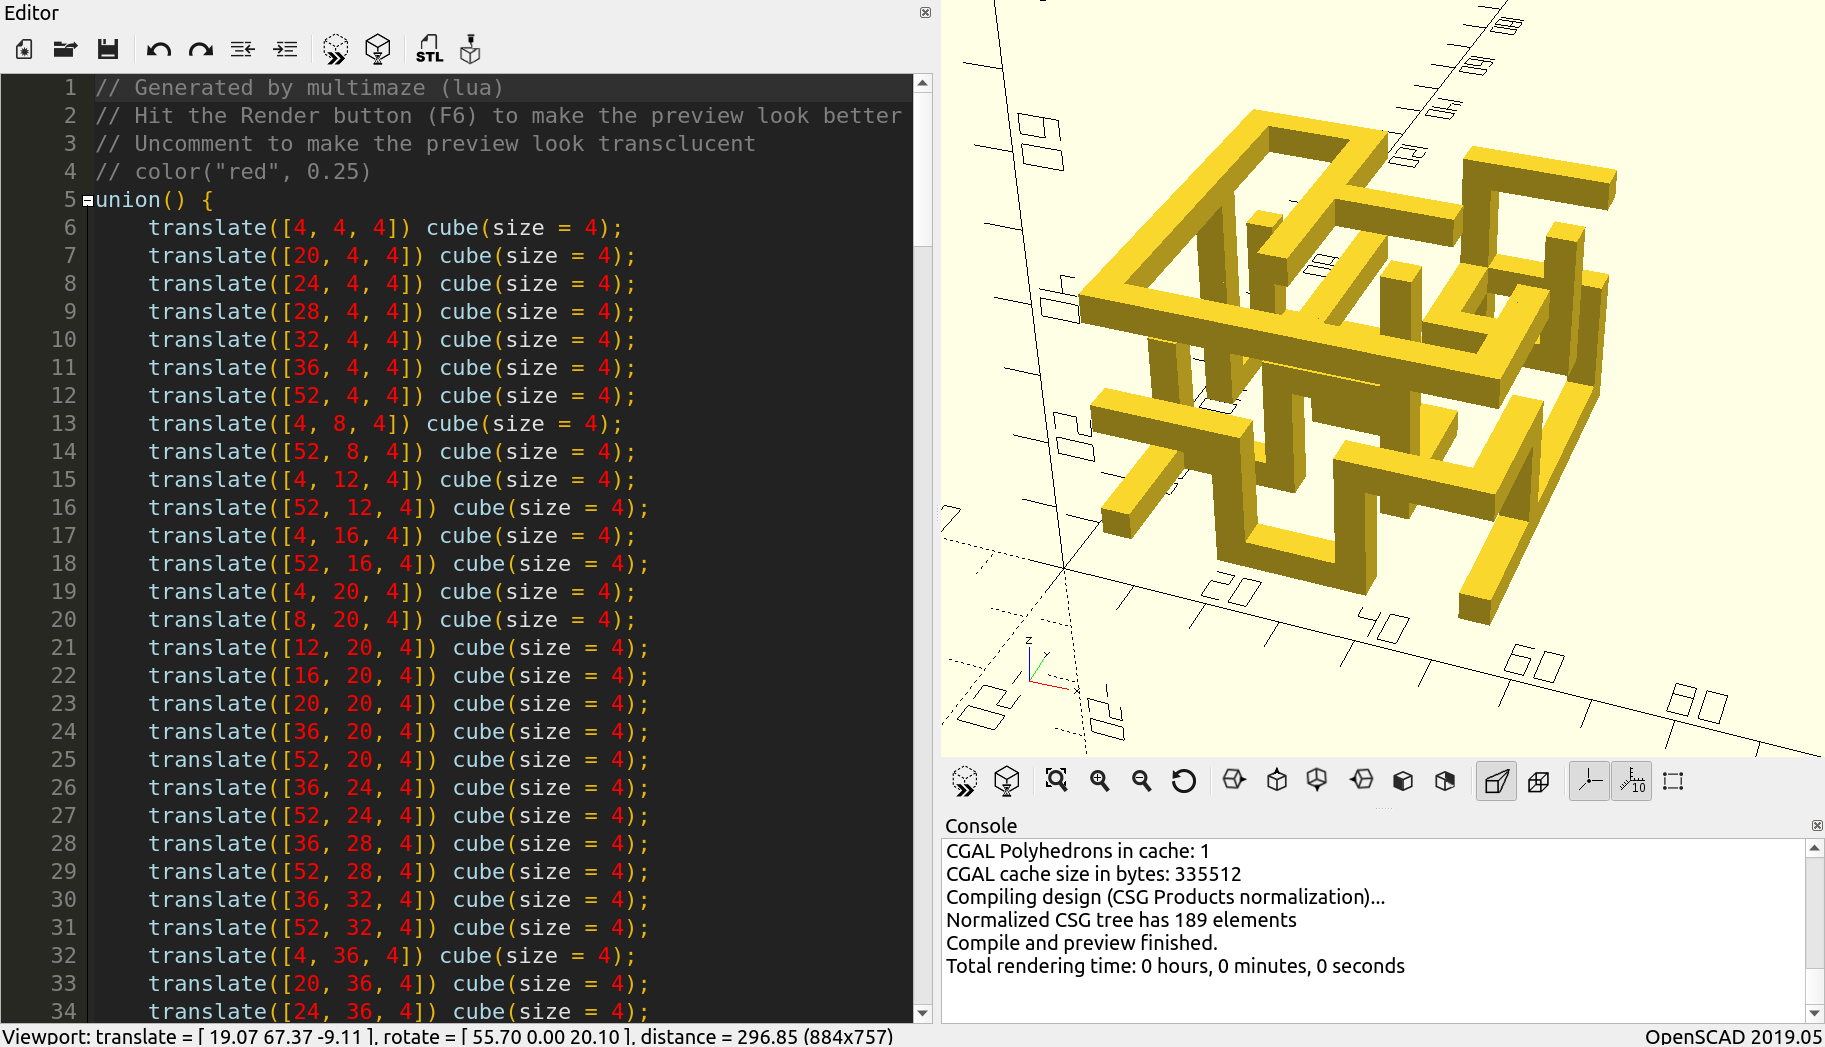 A screenshot of OpenSCAD showing a generated maze.